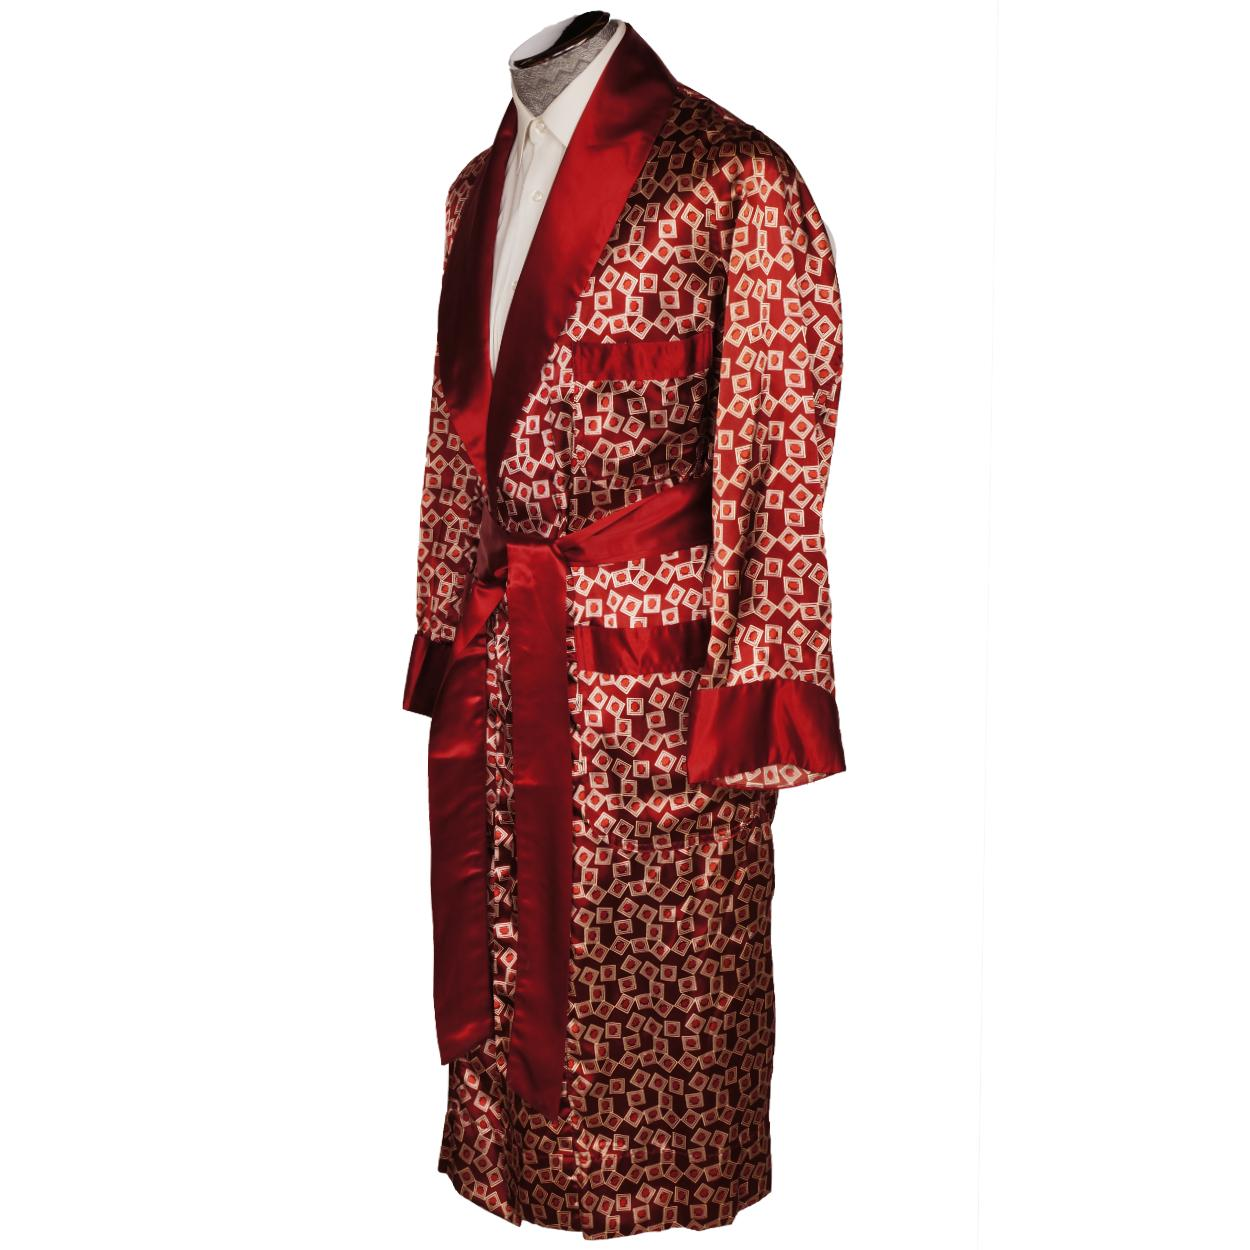 1940s Dressing Gown: Vintage 1940s Mens Dressing Gown Smoking Lounging Robe By